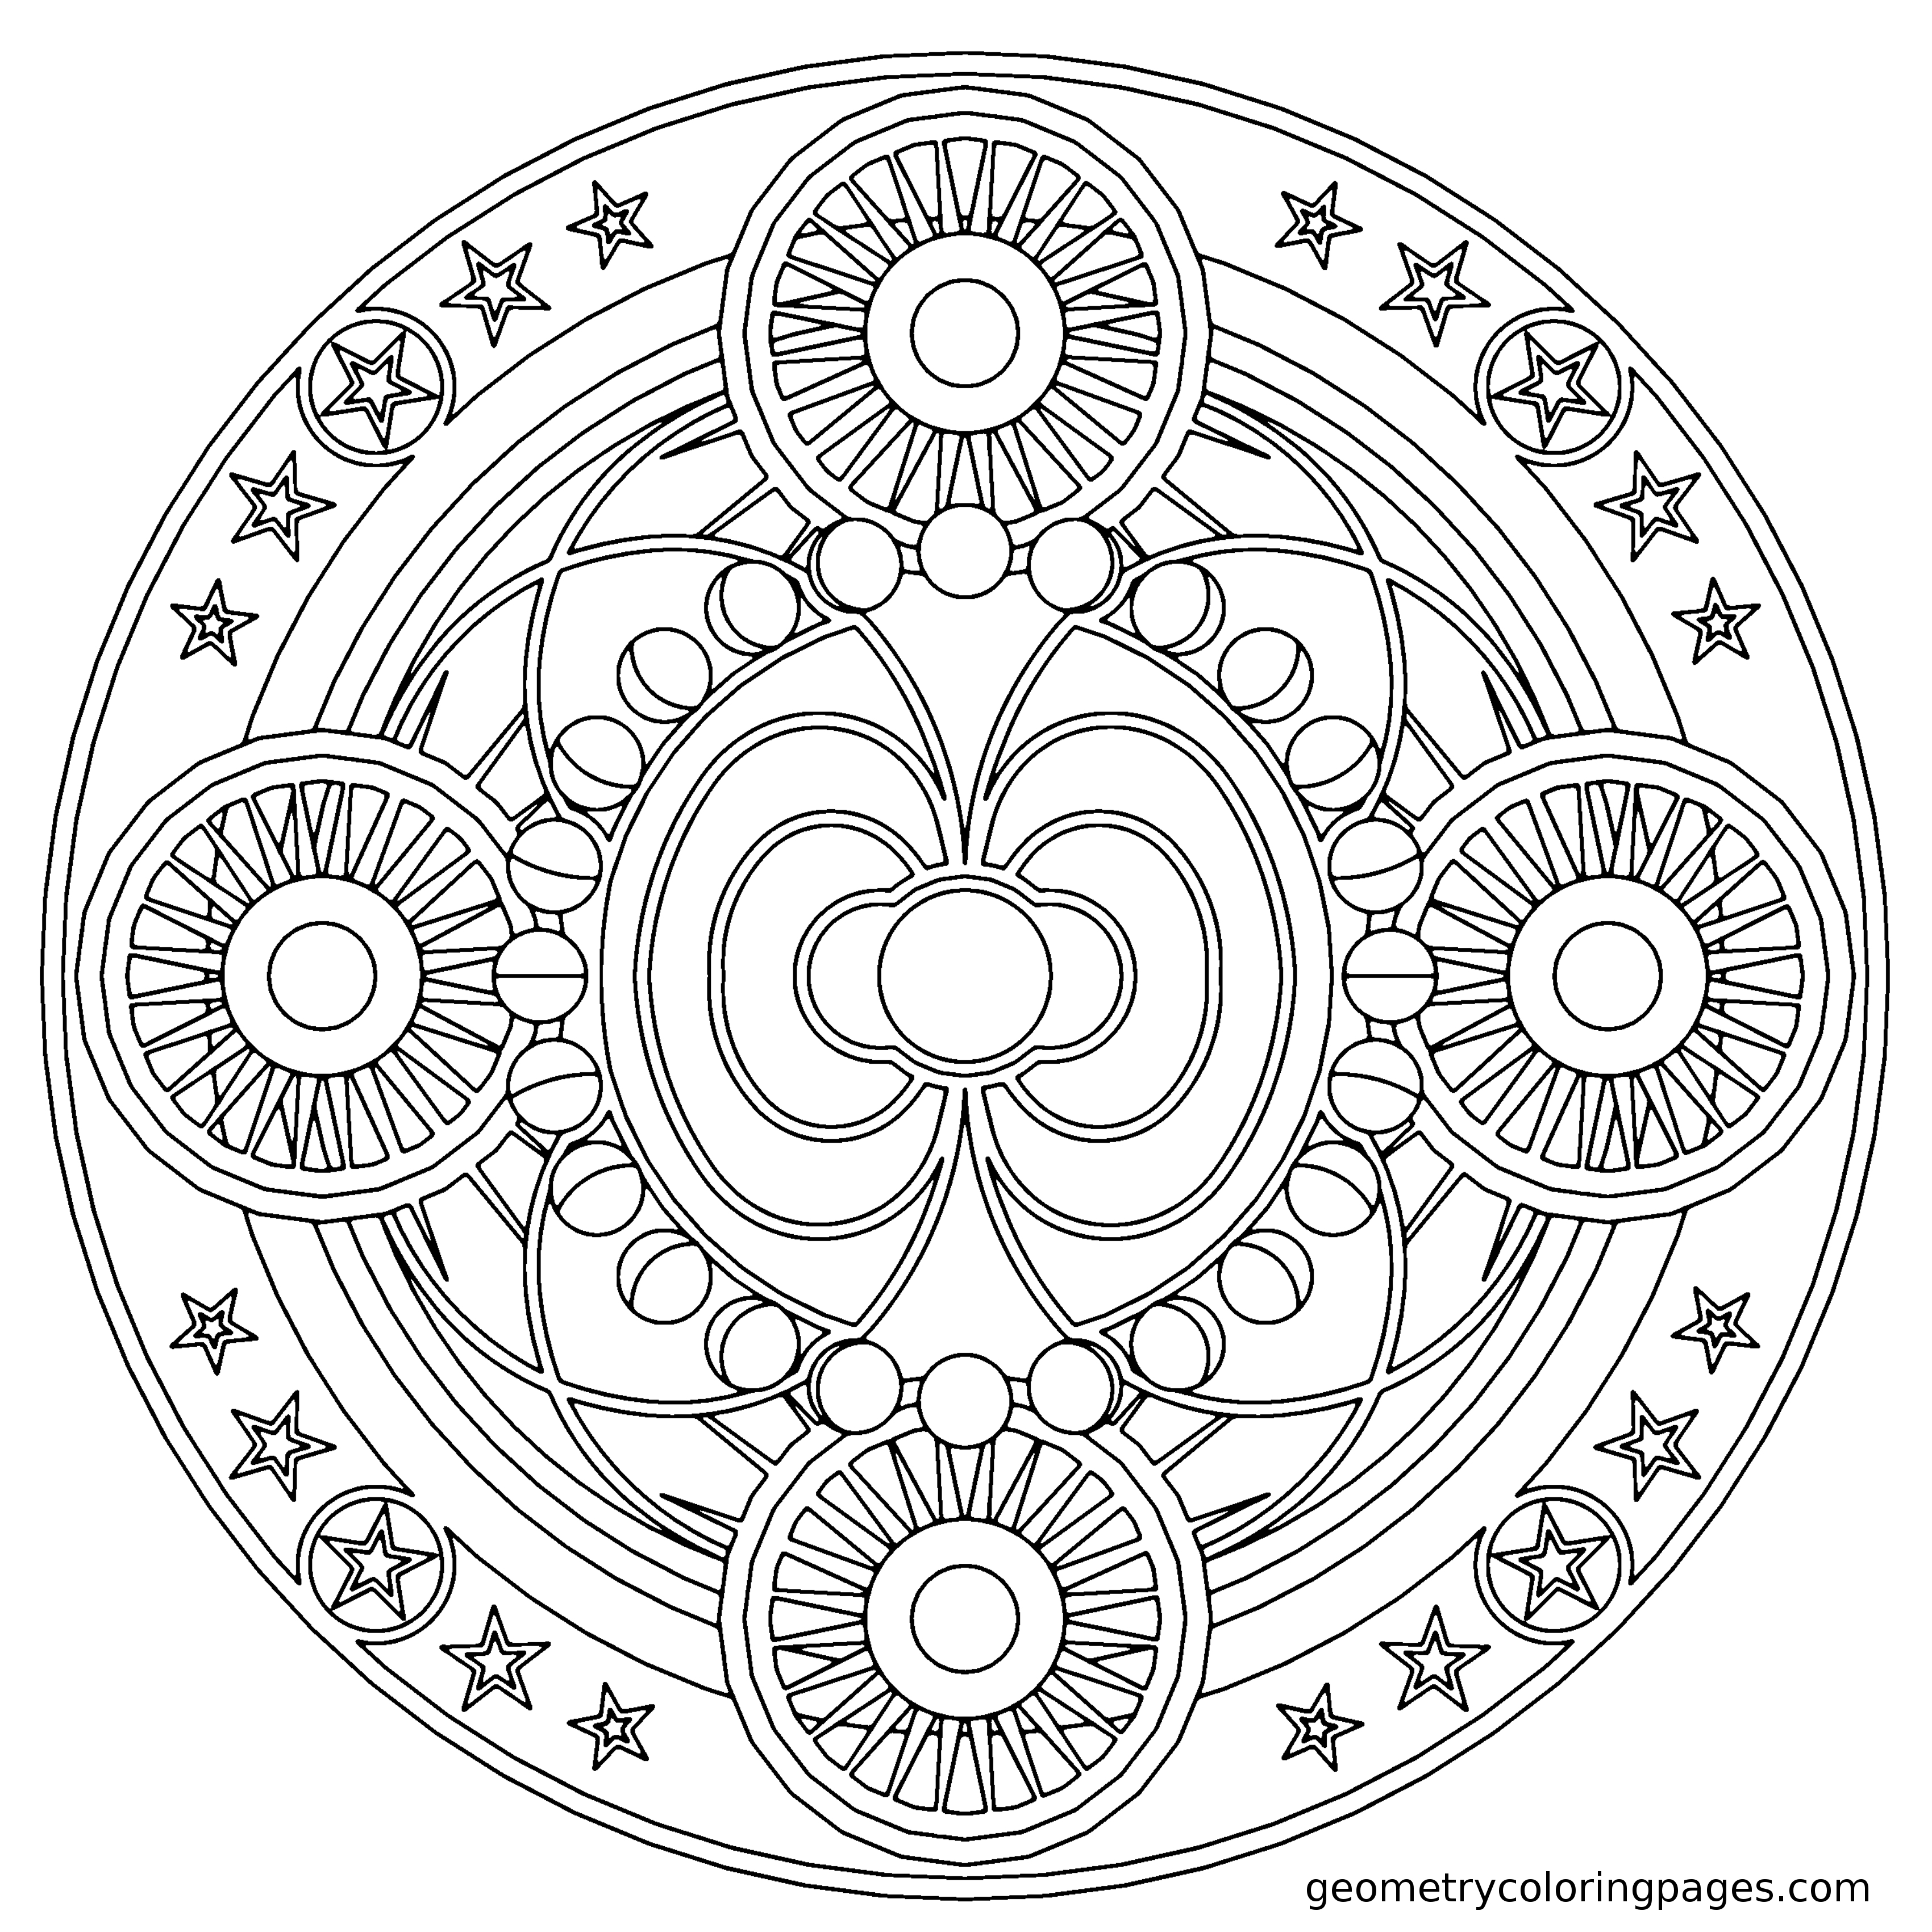 3400x3400 Printable Free Coloring Page Free Mandala To Color Cubes It S